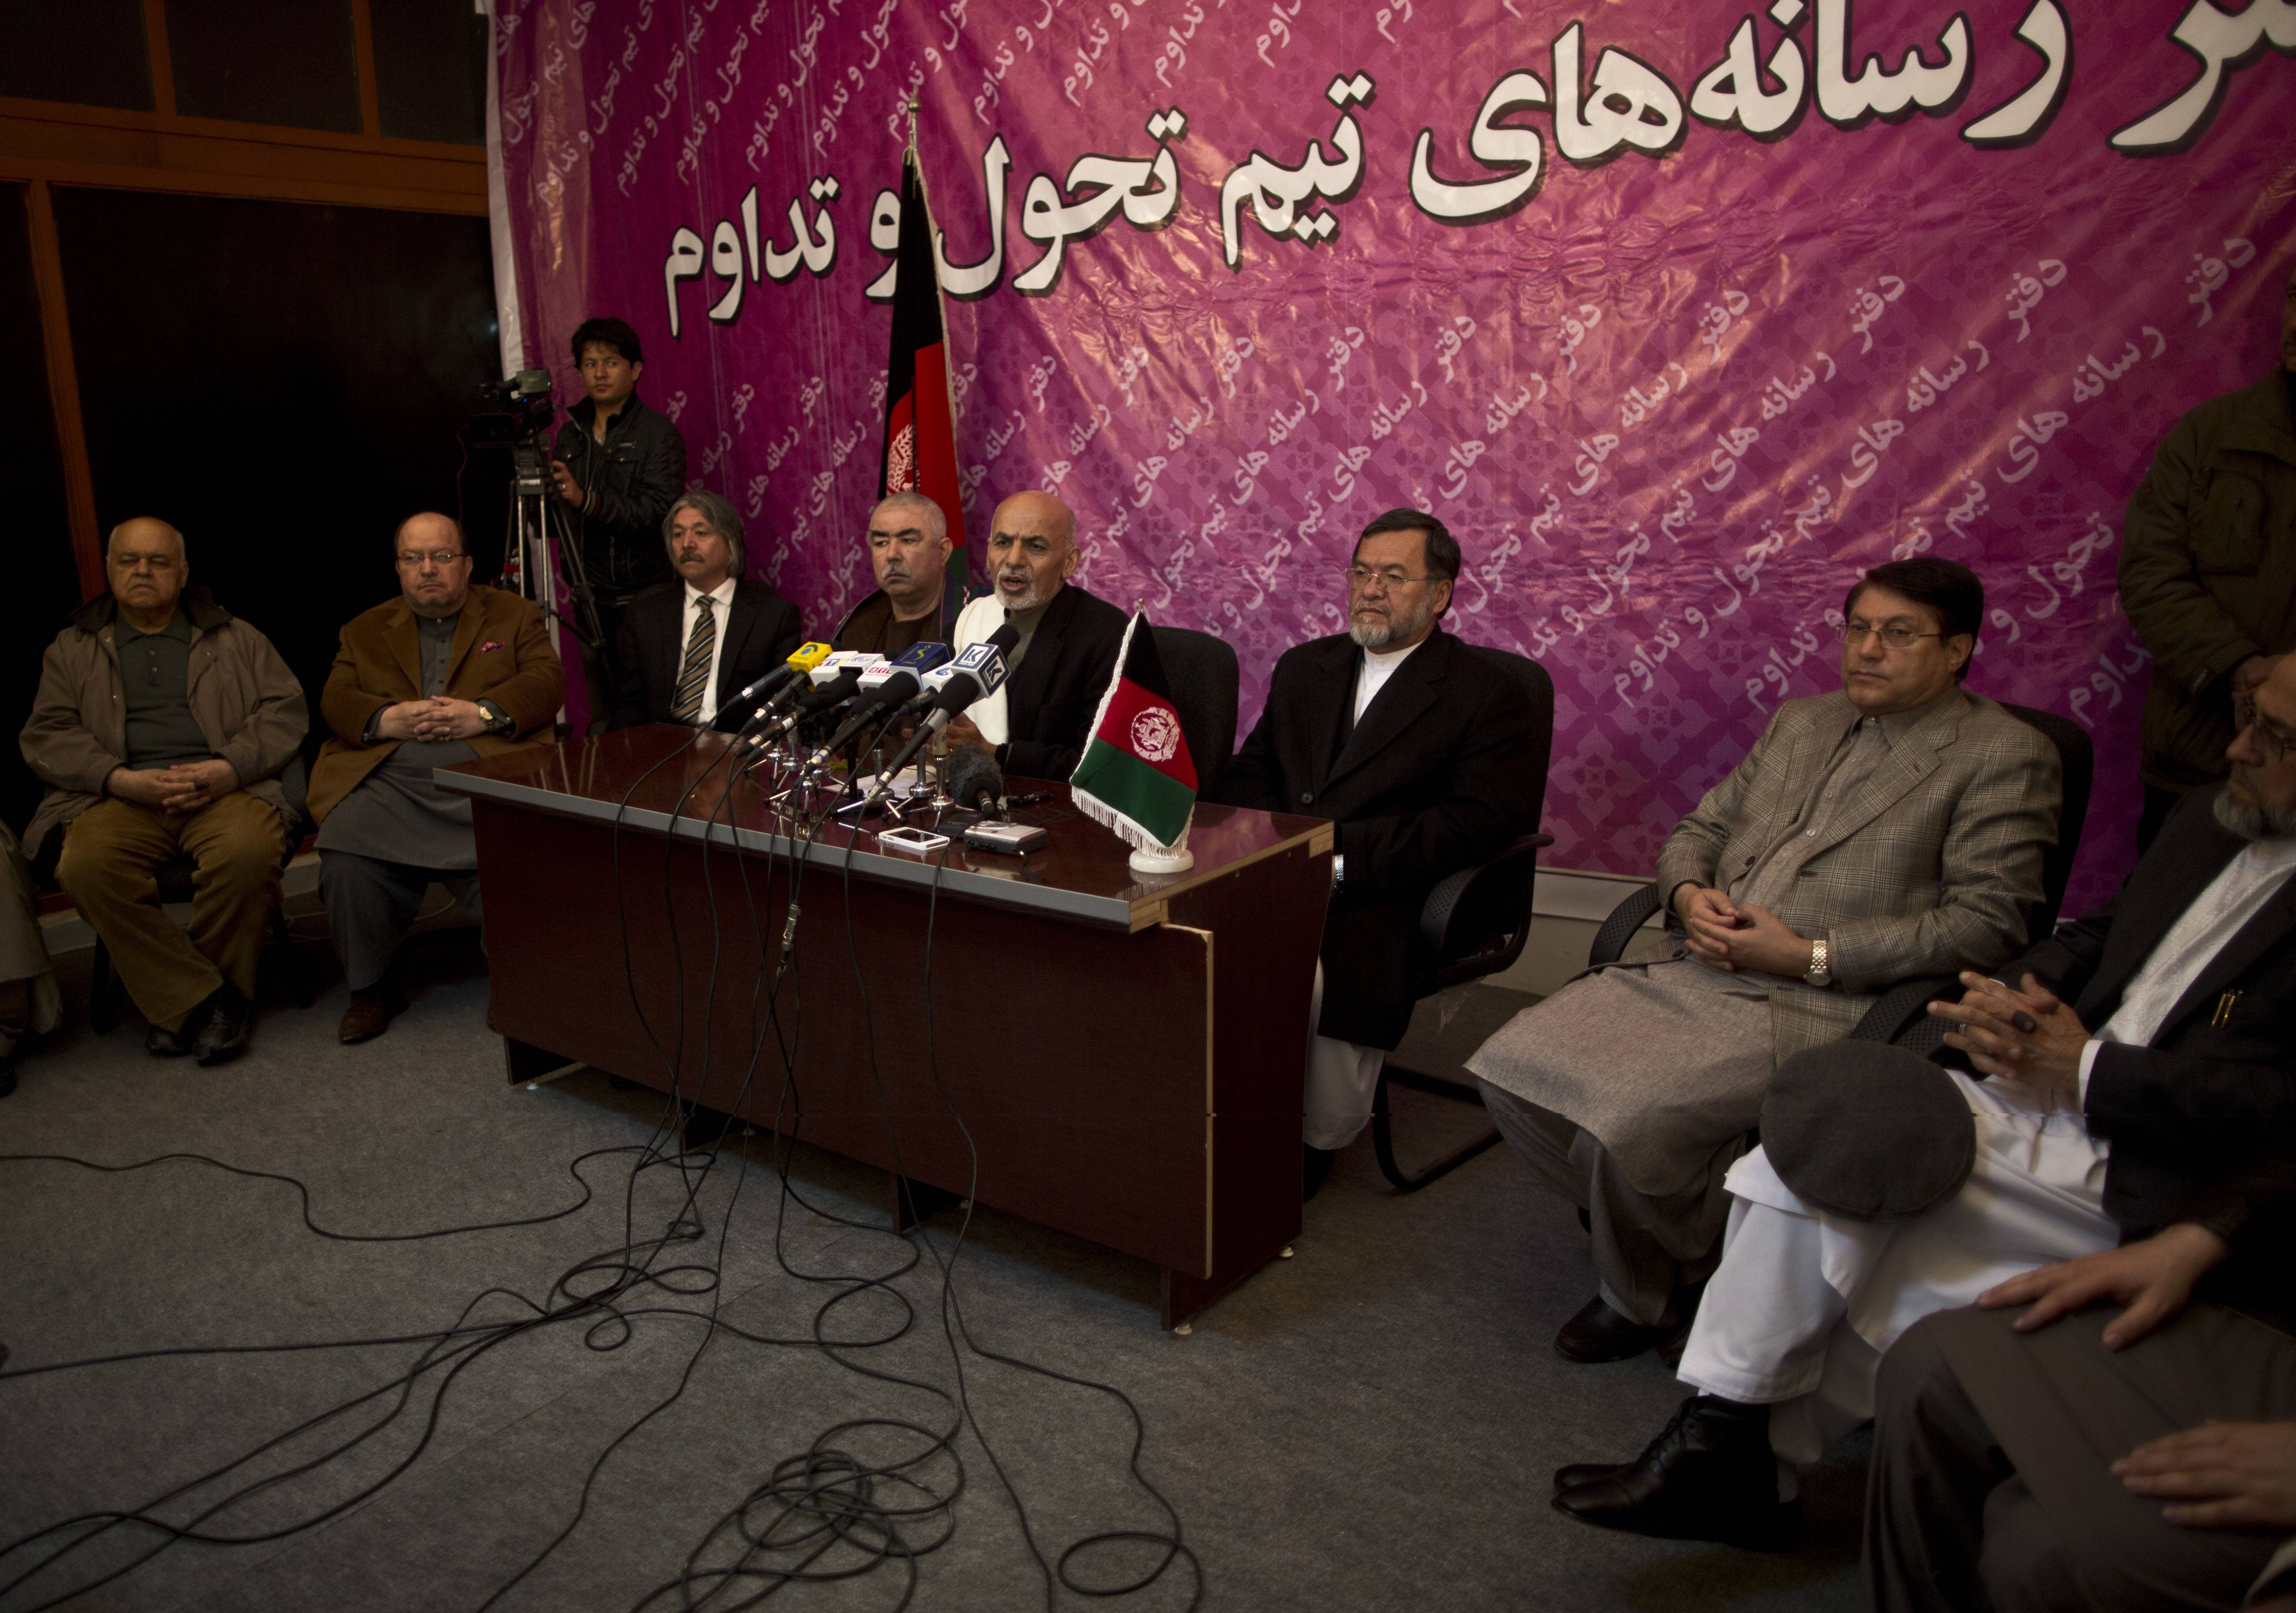 Afghan presidential candidate Ashraf Ghani Ahmadzai, center, surrounded by party members, speaks during a news conference, in Kabul, Afghanistan, Saturday.